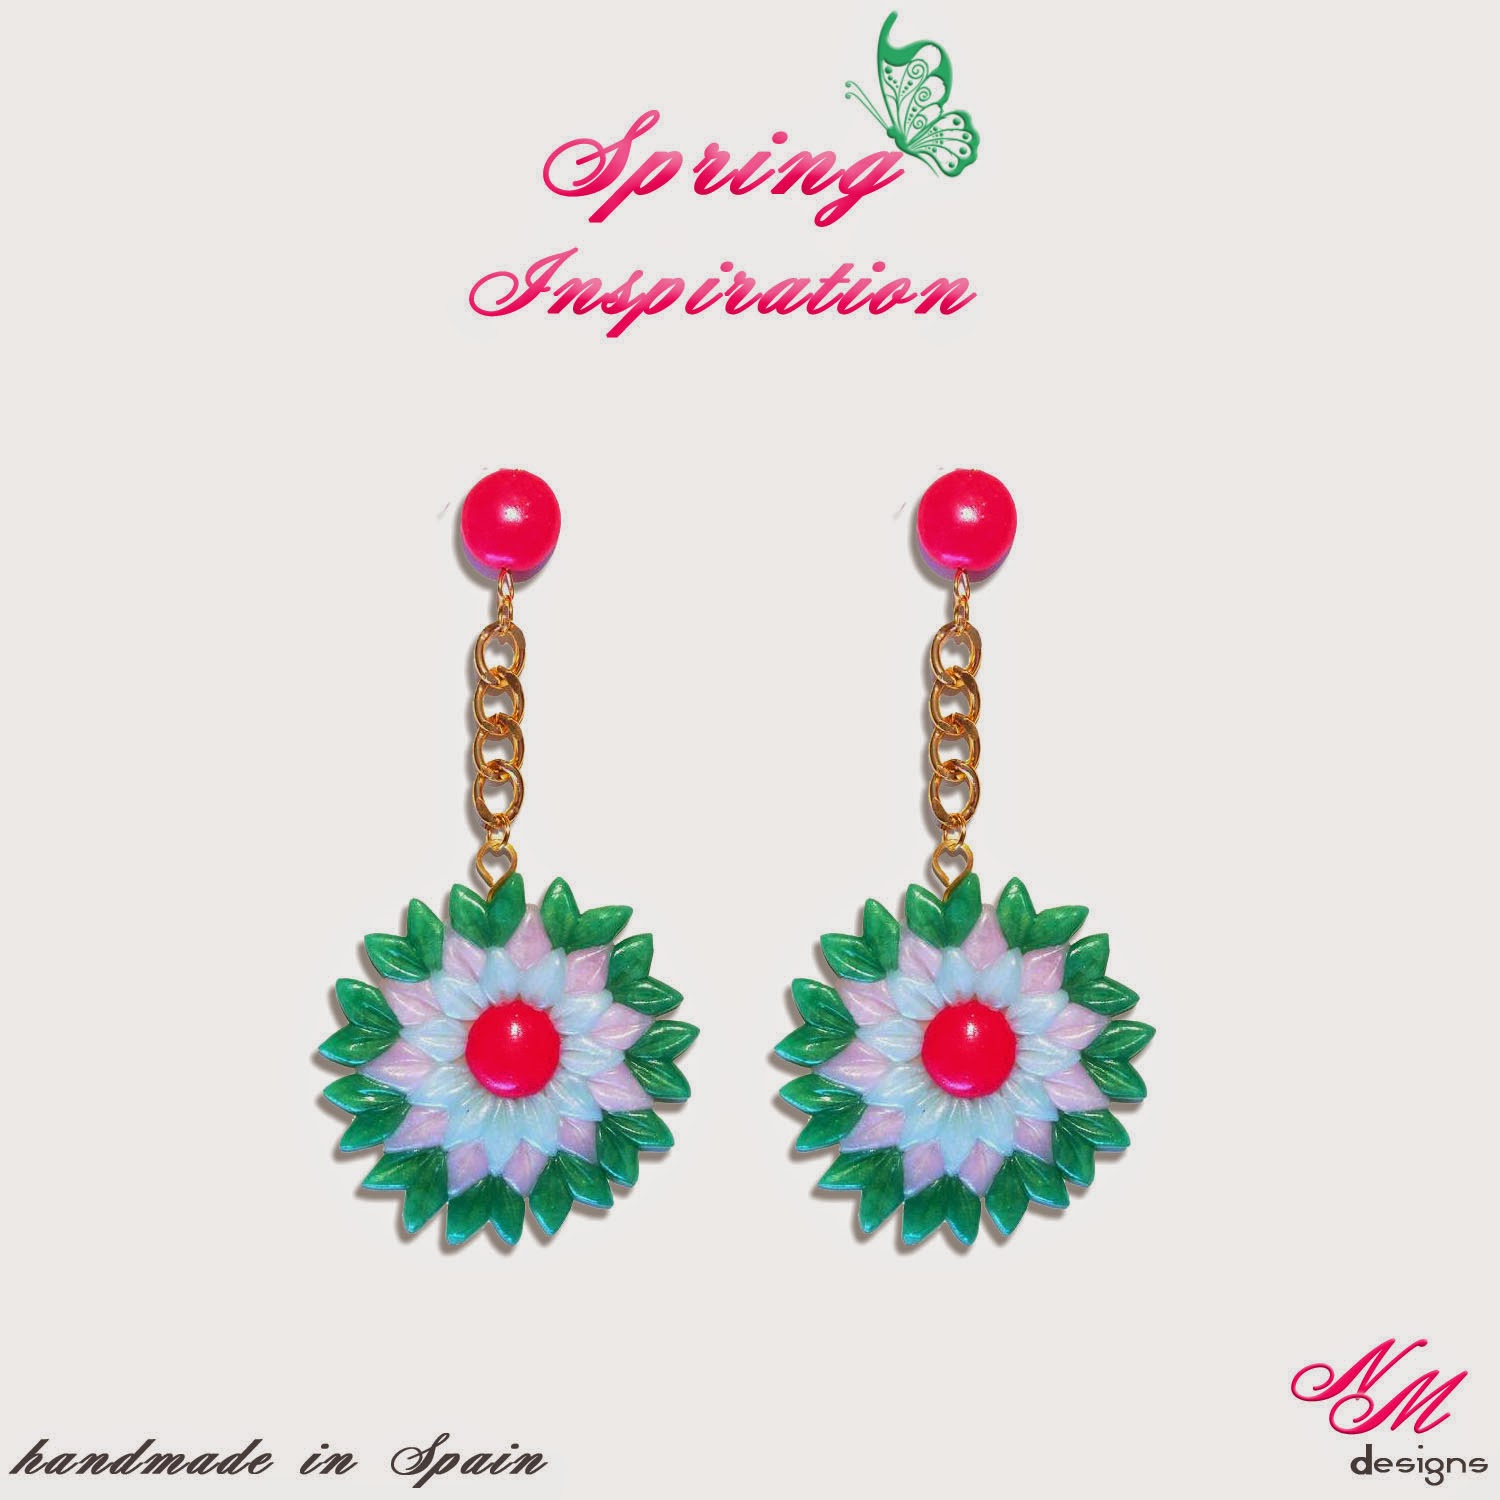 Pendientes/Earrings NM Designs